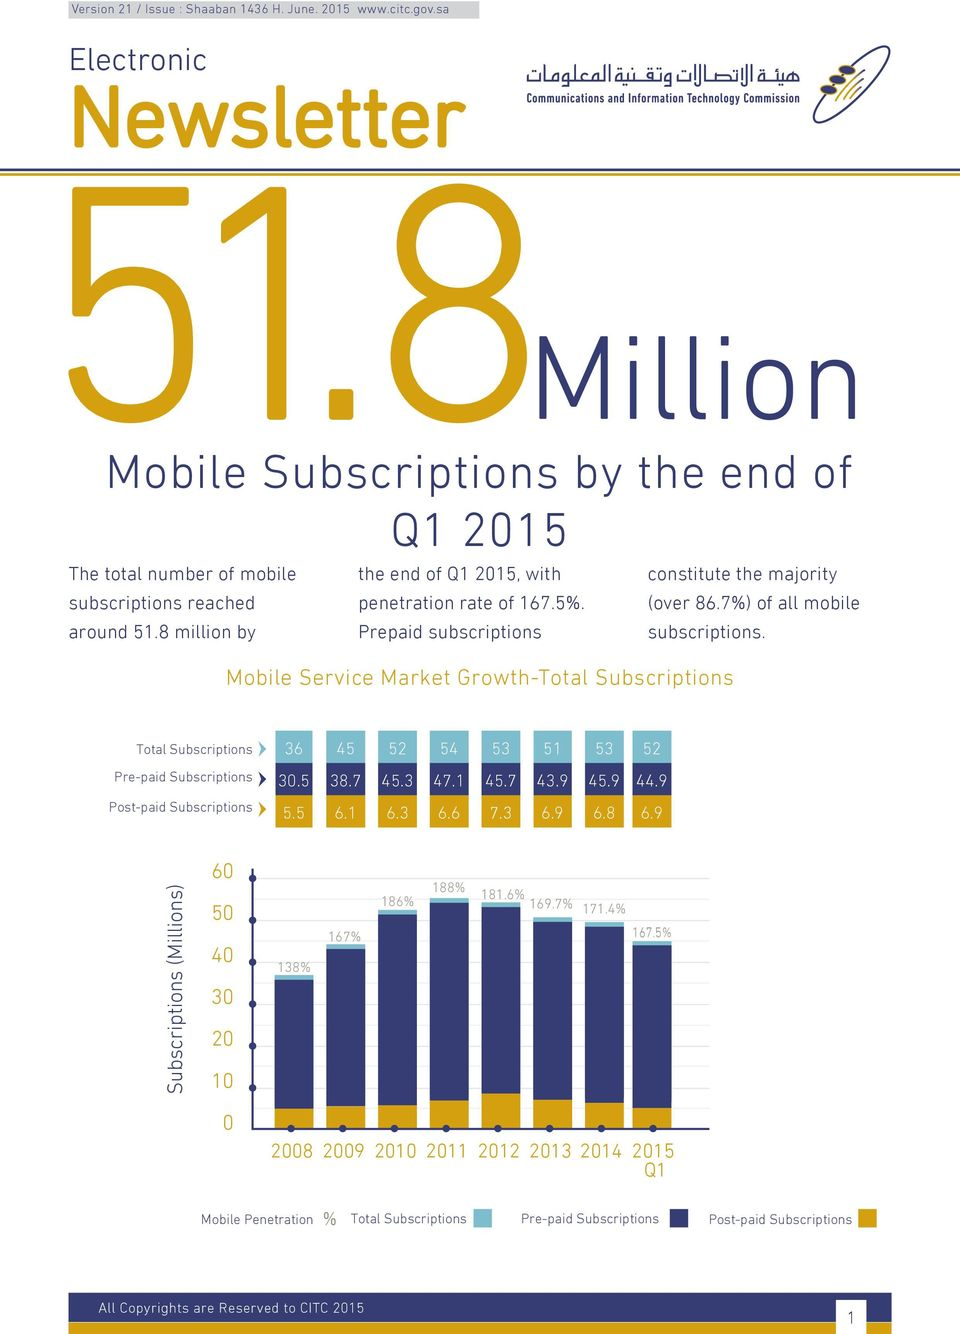 Mobile Service Market Growth-Total Subscriptions Total Subscriptions 36 3 3 Pre-paid Subscriptions 3. 38.7.3 7..7 3.9.9.9 Post-paid Subscriptions. 6. 6.3 6.